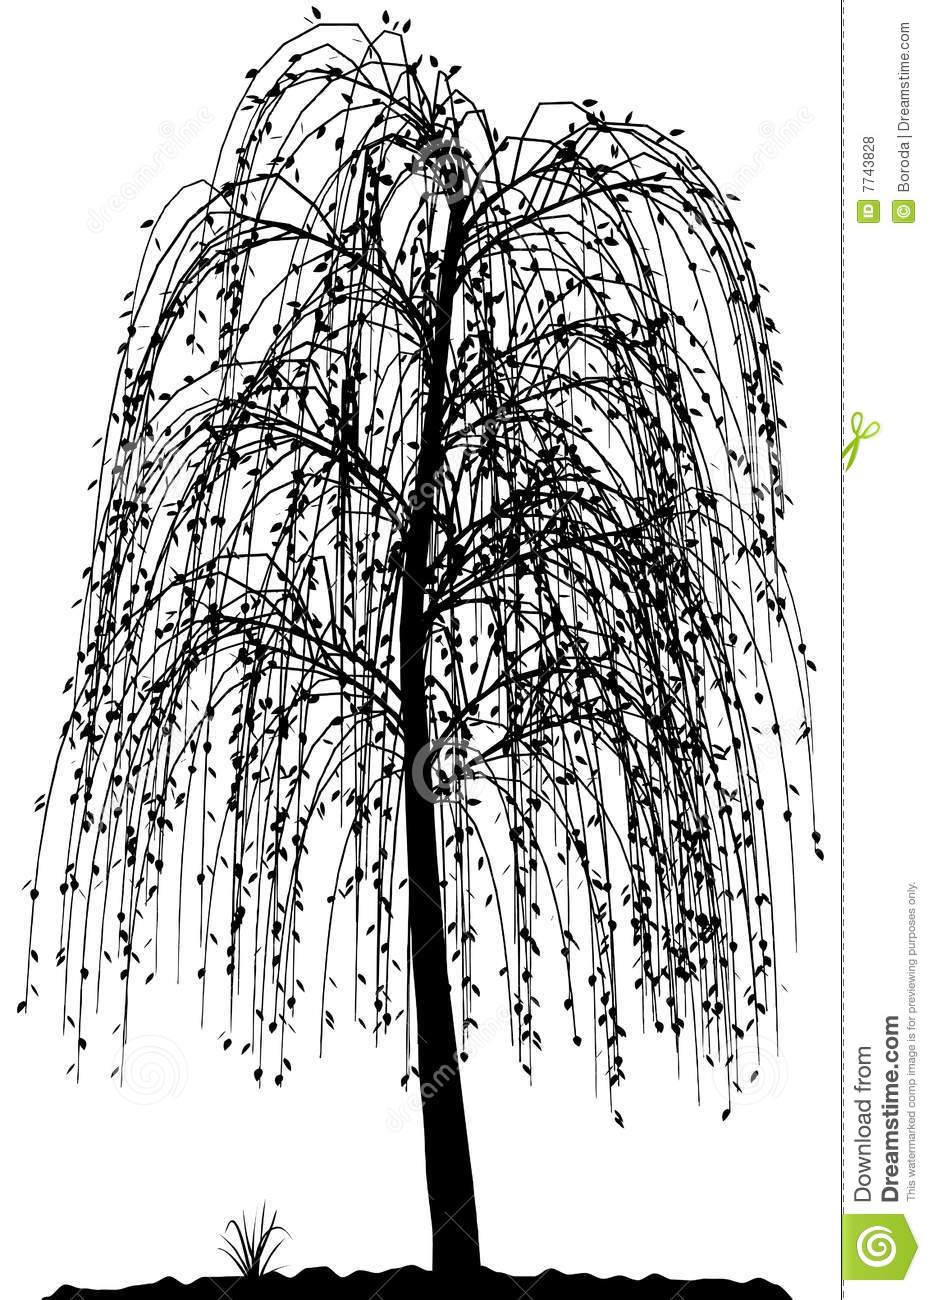 Cool Tree Black And White: High Detailed Tree Silhouette On White Background. Stock